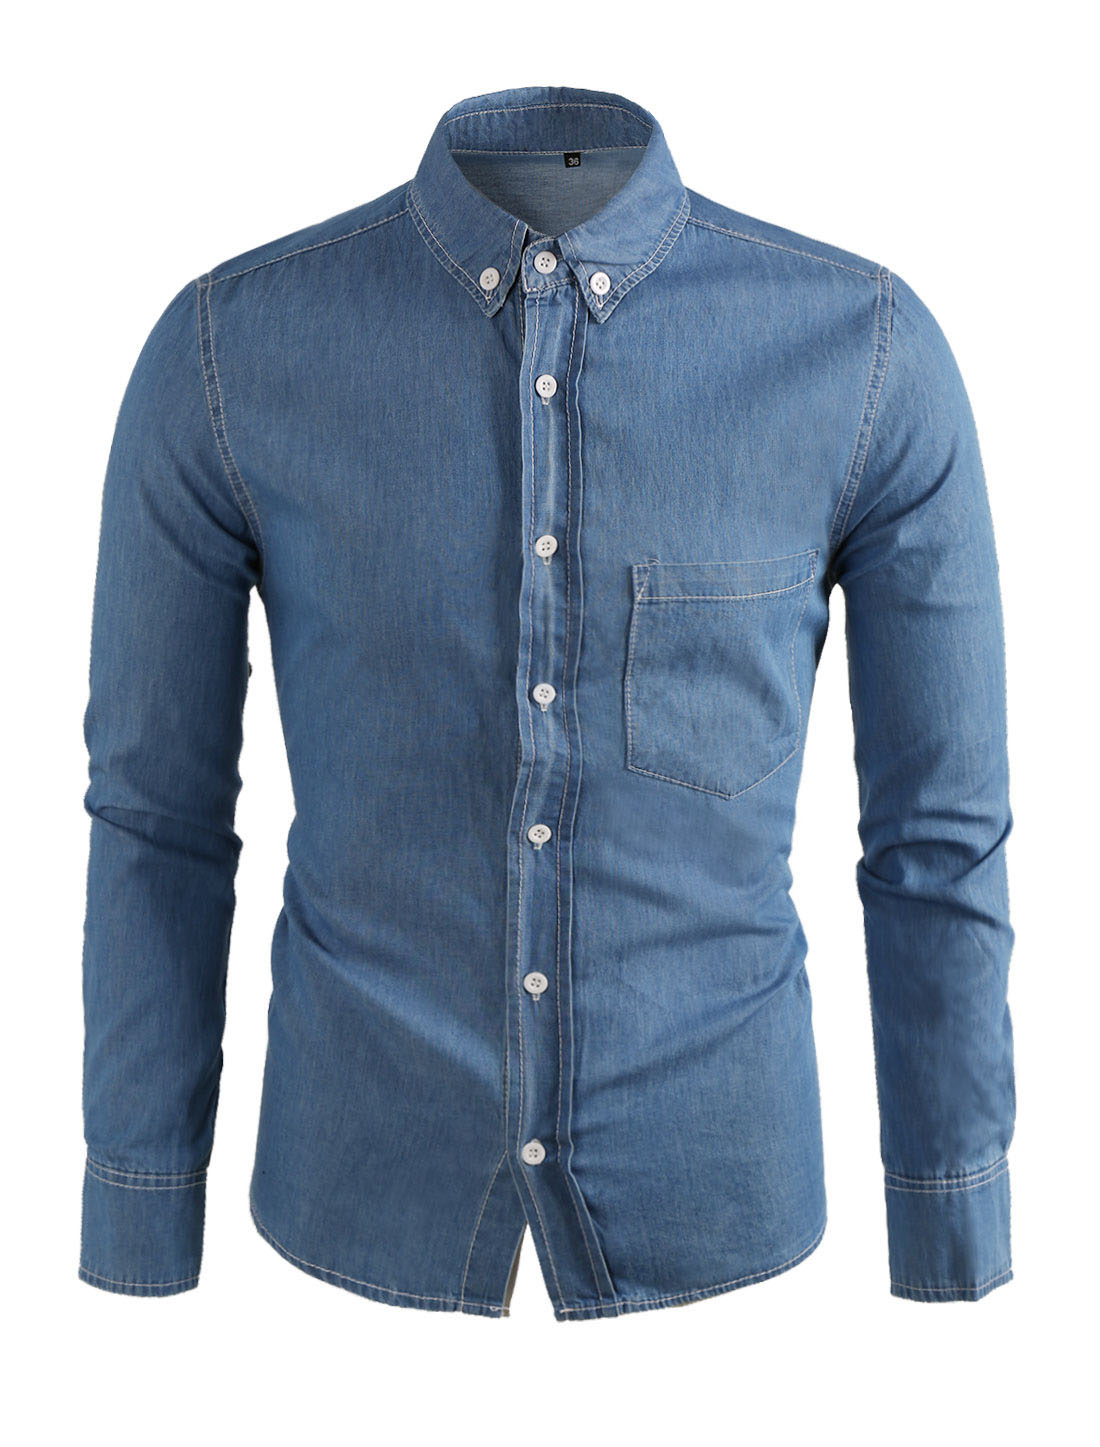 Men Button-Collar Single Breasted Long Sleeves Chambray Denim Shirt Blue M